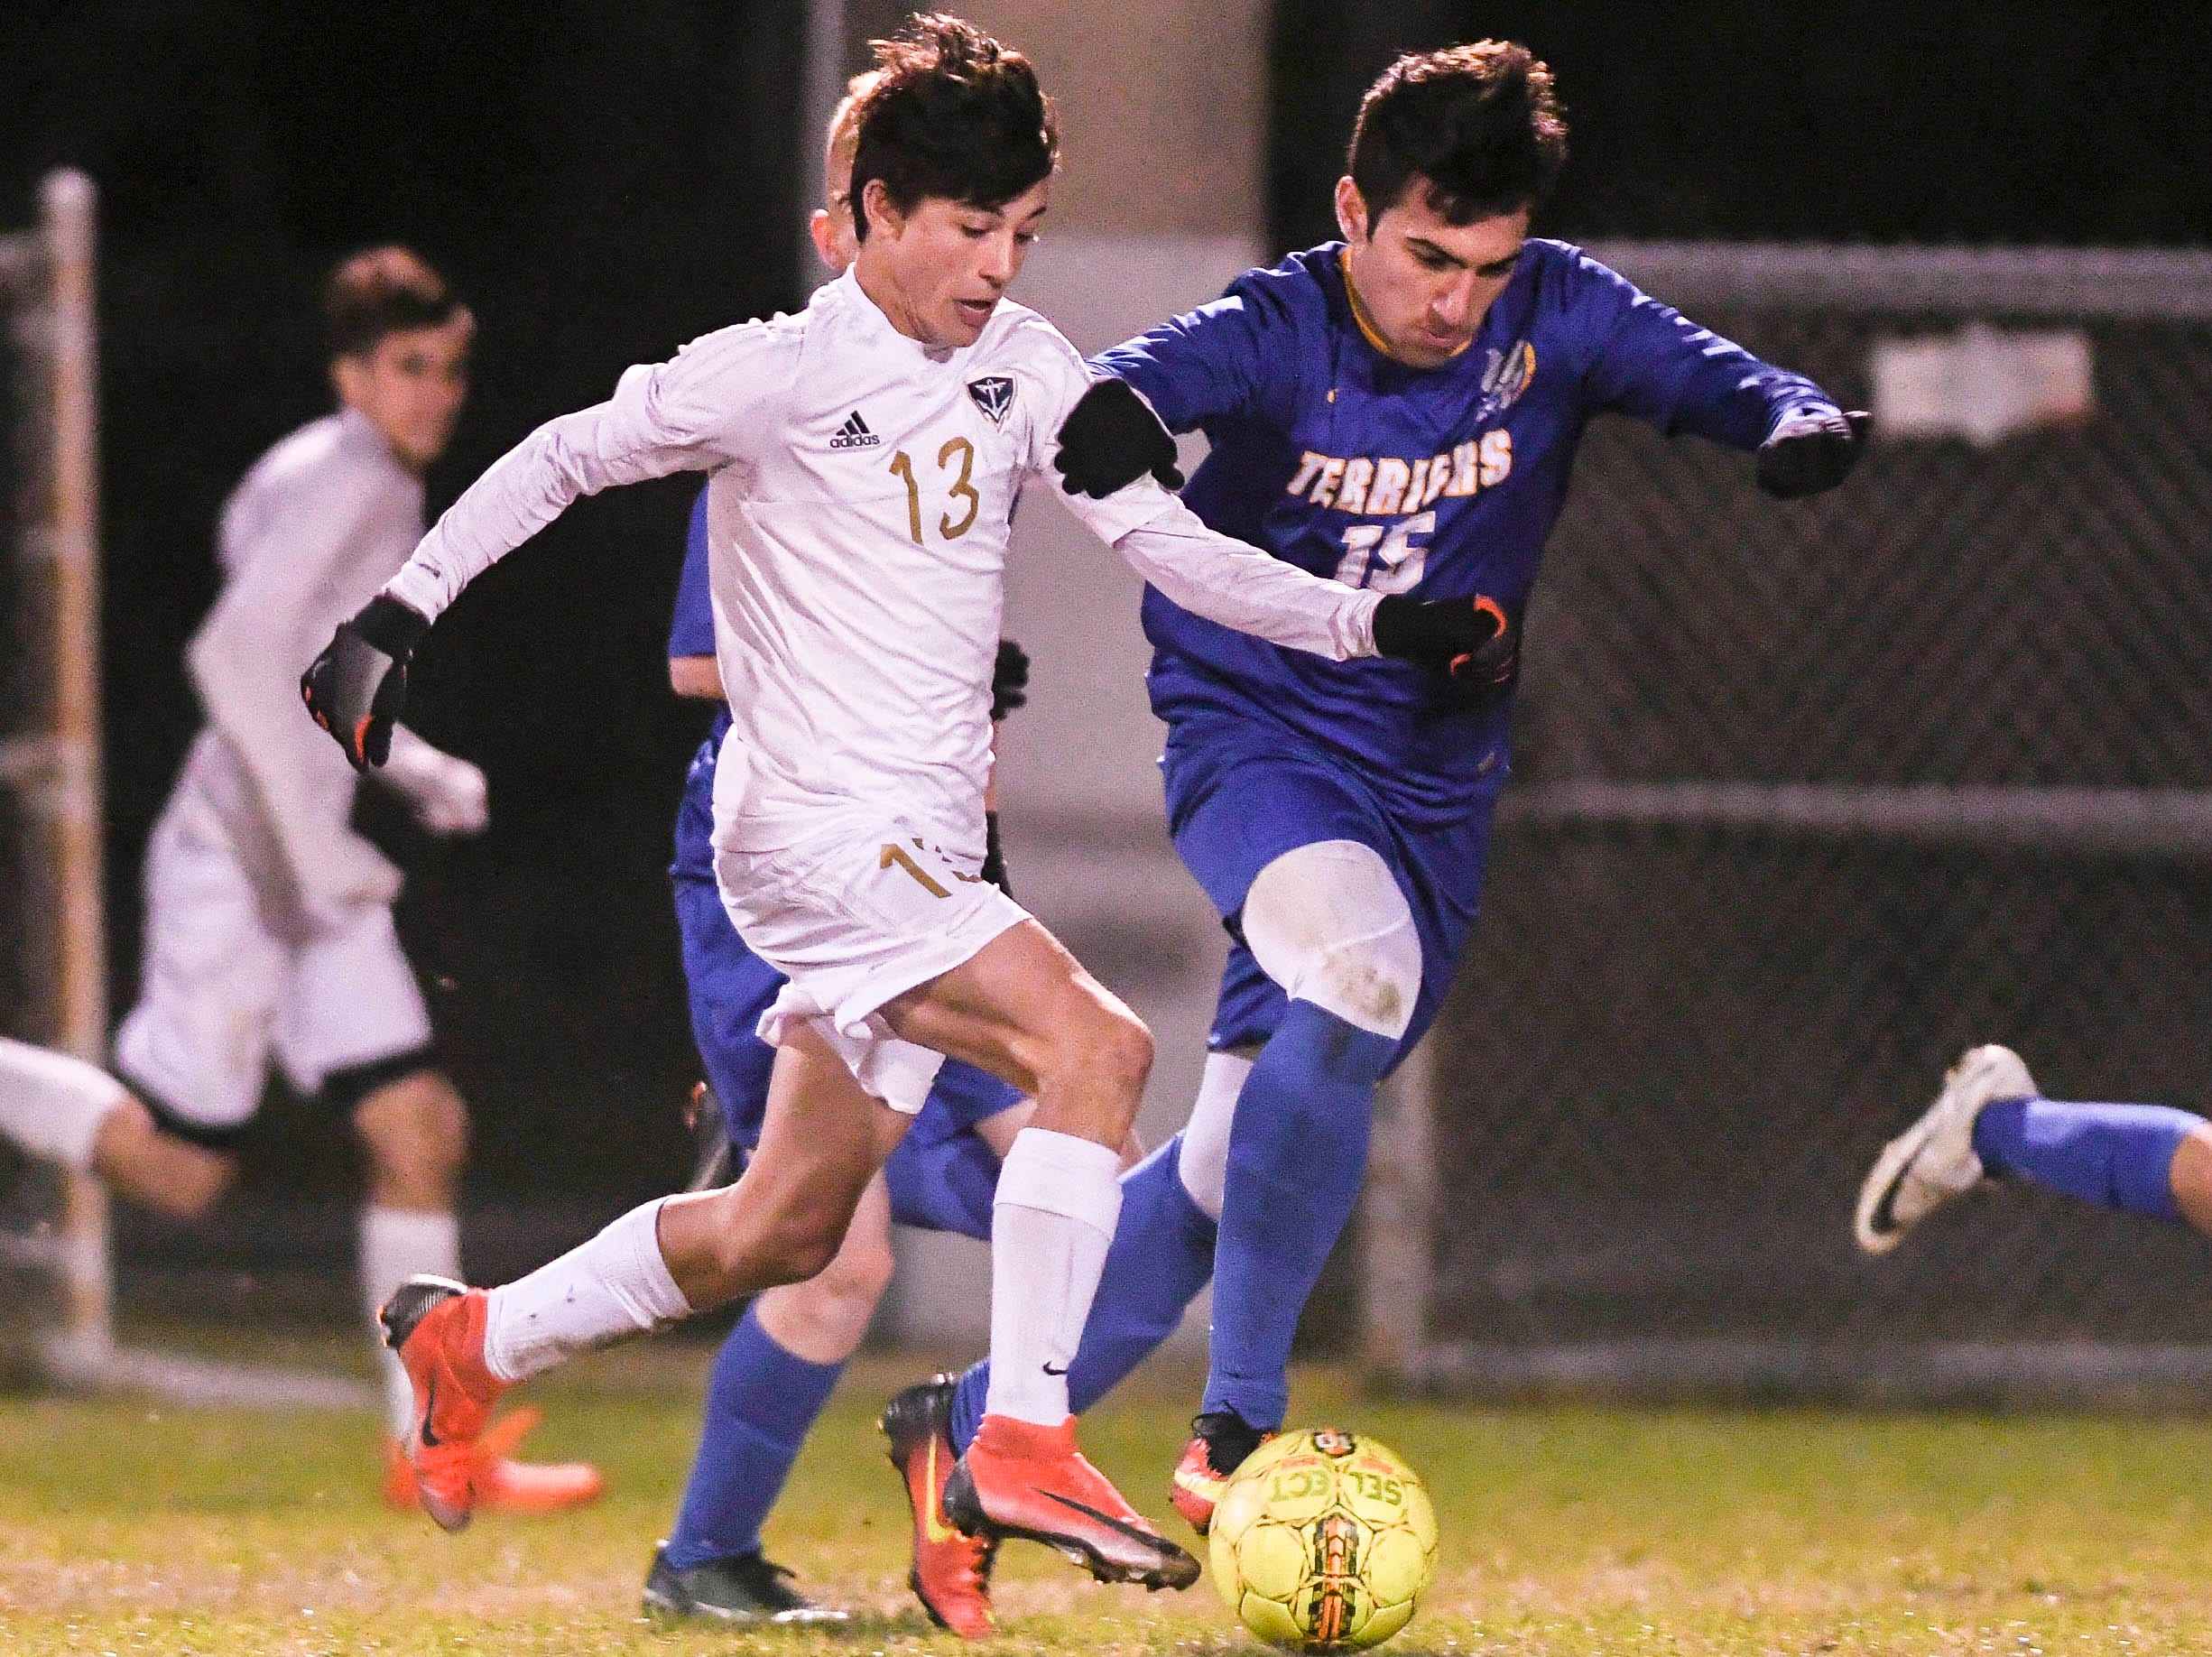 Eau Gallie's Jaxon Supernaw is closely guarded by Mickey Mikitarian of Titusville during Wednesday's District 12, Class 3A semifinal at McLarty Stadium